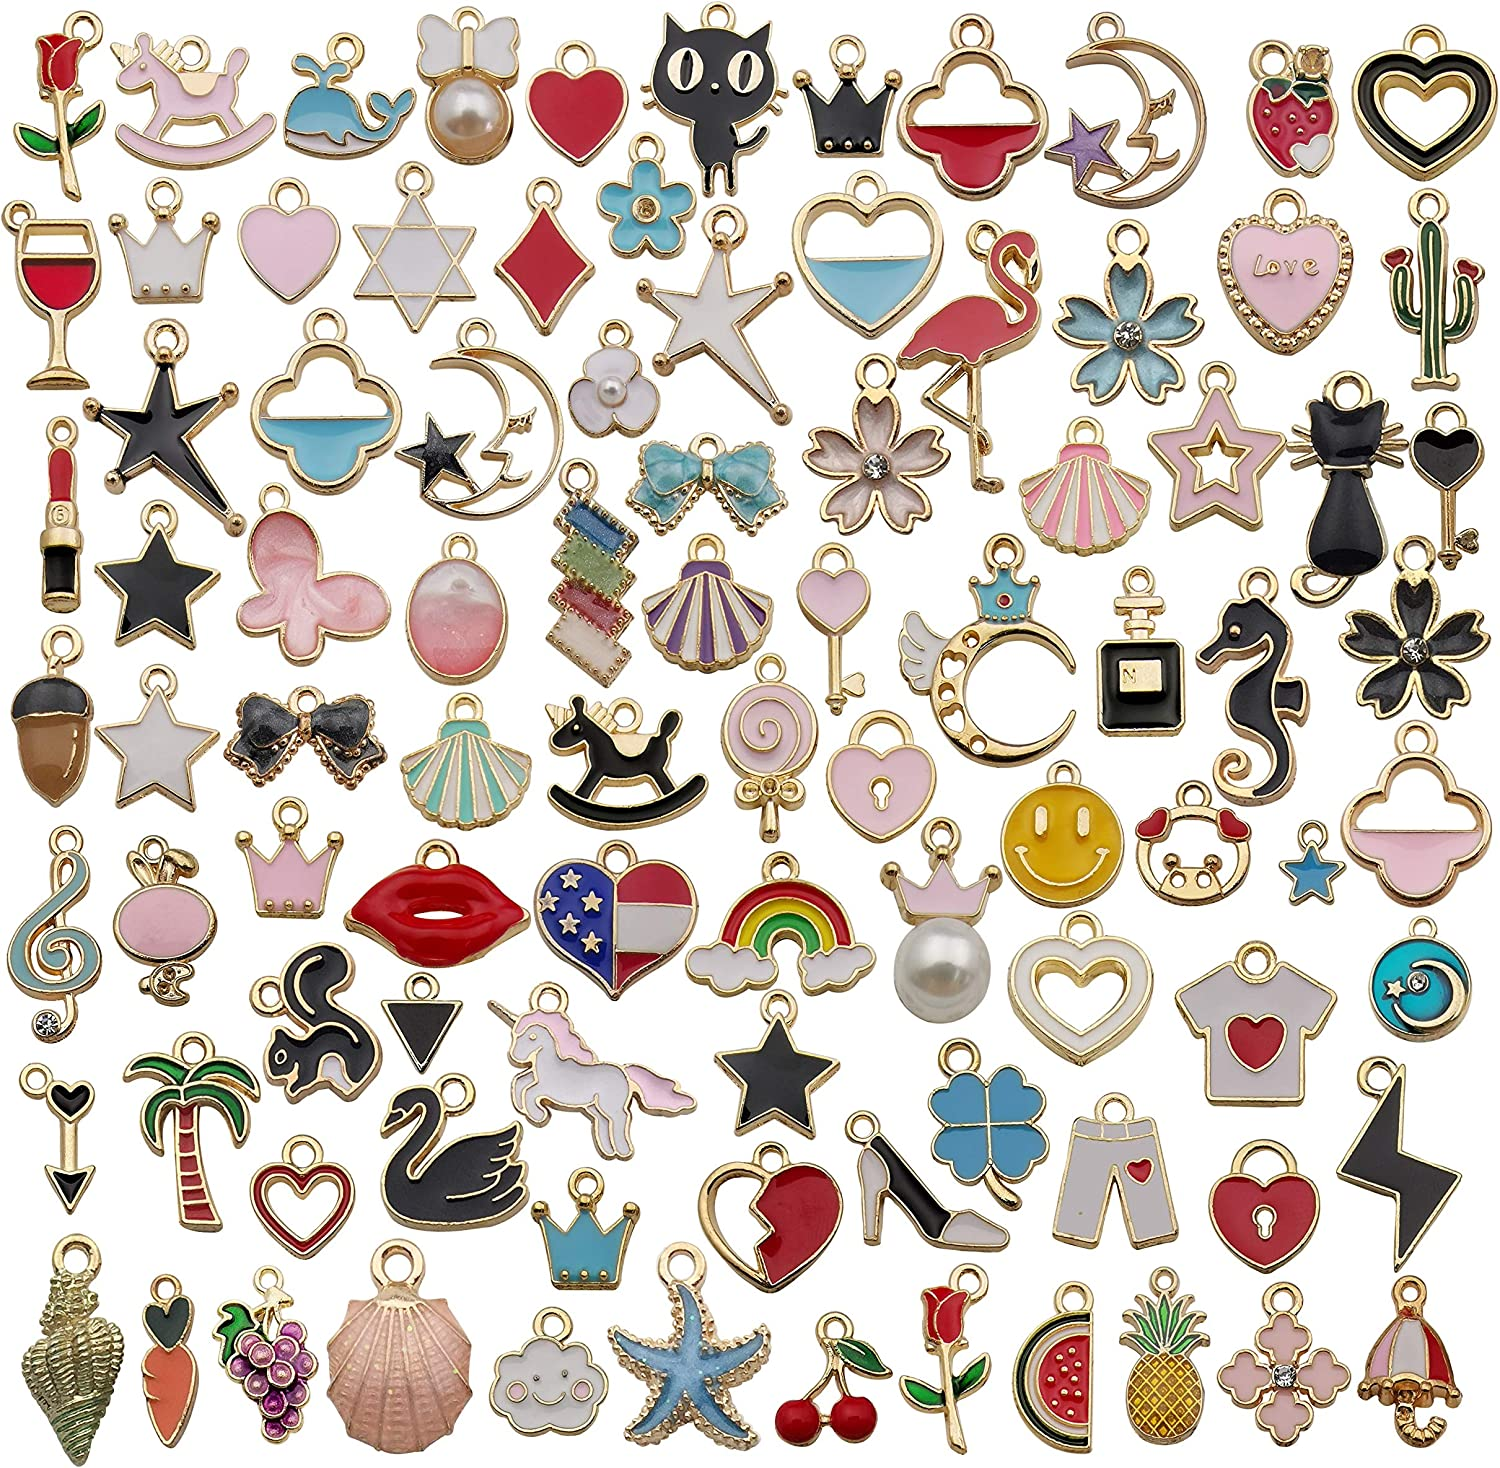 90pcs Mixed Assorted Gold Plated Enamel Animals Fruit Moon Star Dainty Flower Dangle Charm Pendant for DIY Jewelry Making Necklace Bracelet Earring DIY Jewelry Accessories Charms (M207)